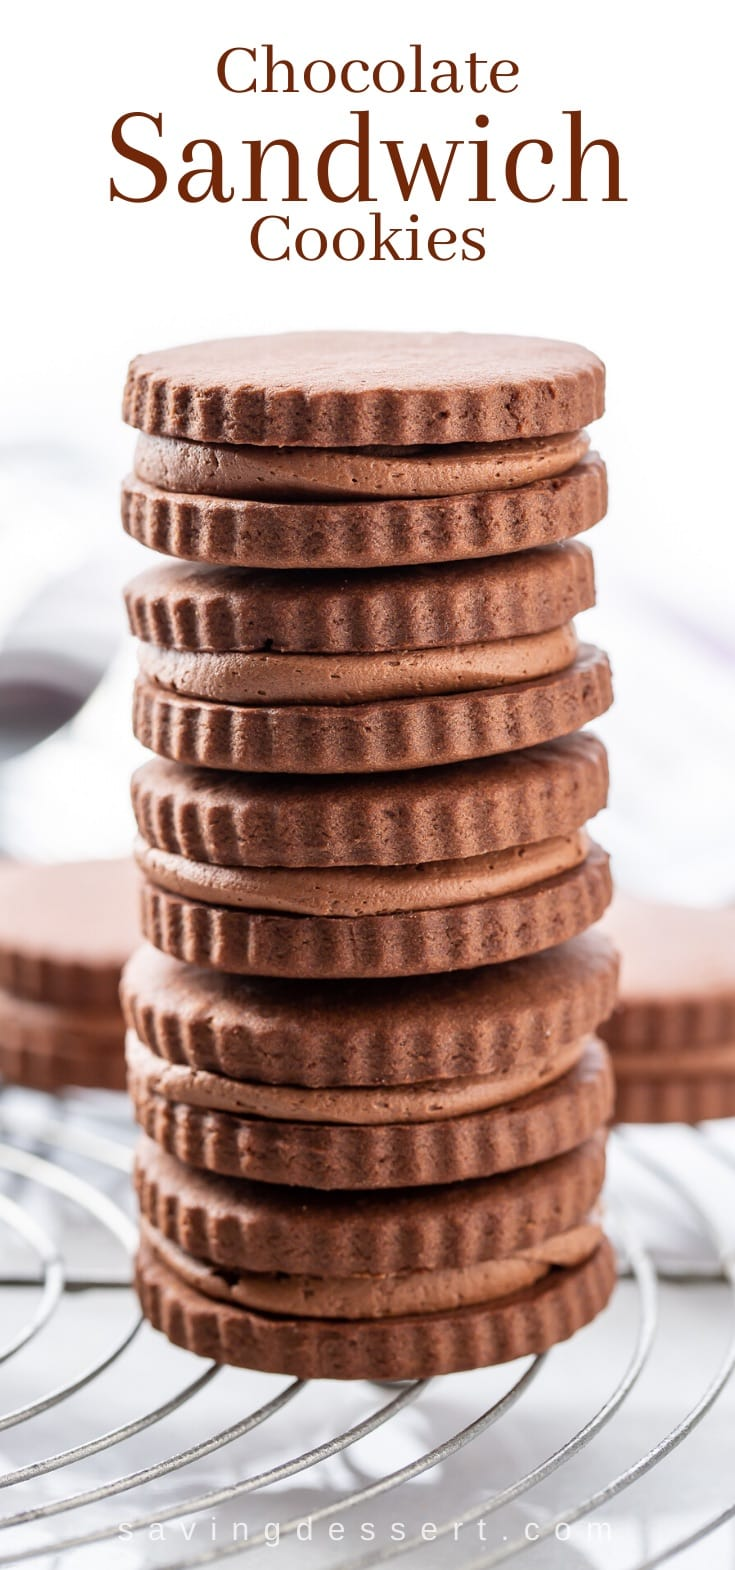 A stack of chocolate sandwich cookies